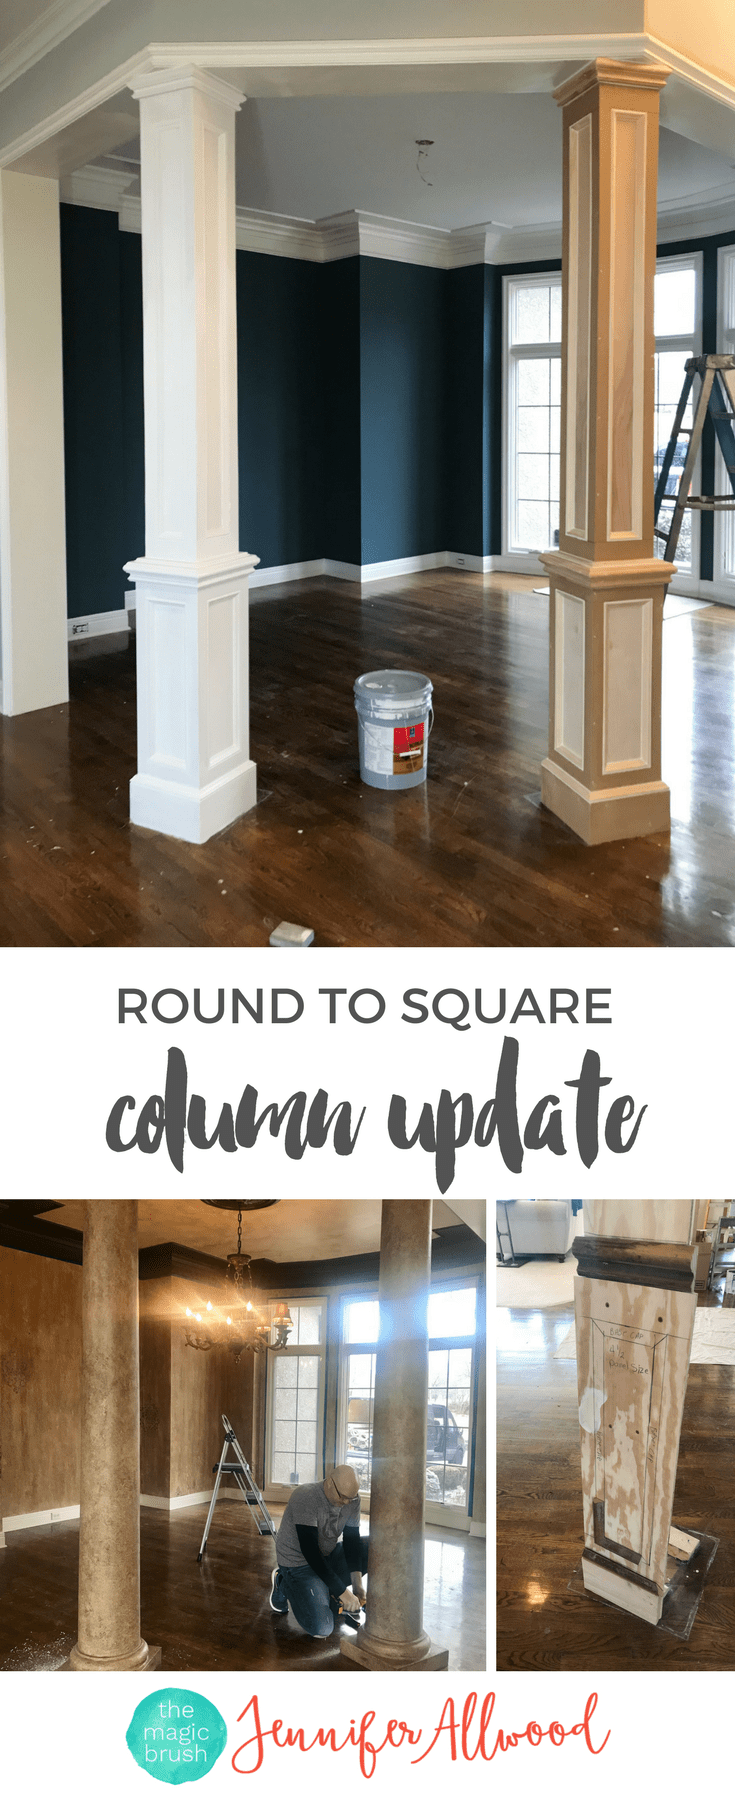 Interior faux columns makeover jennifer allwood navy dining room how to update finish round square also we updated our decor pinterest rh